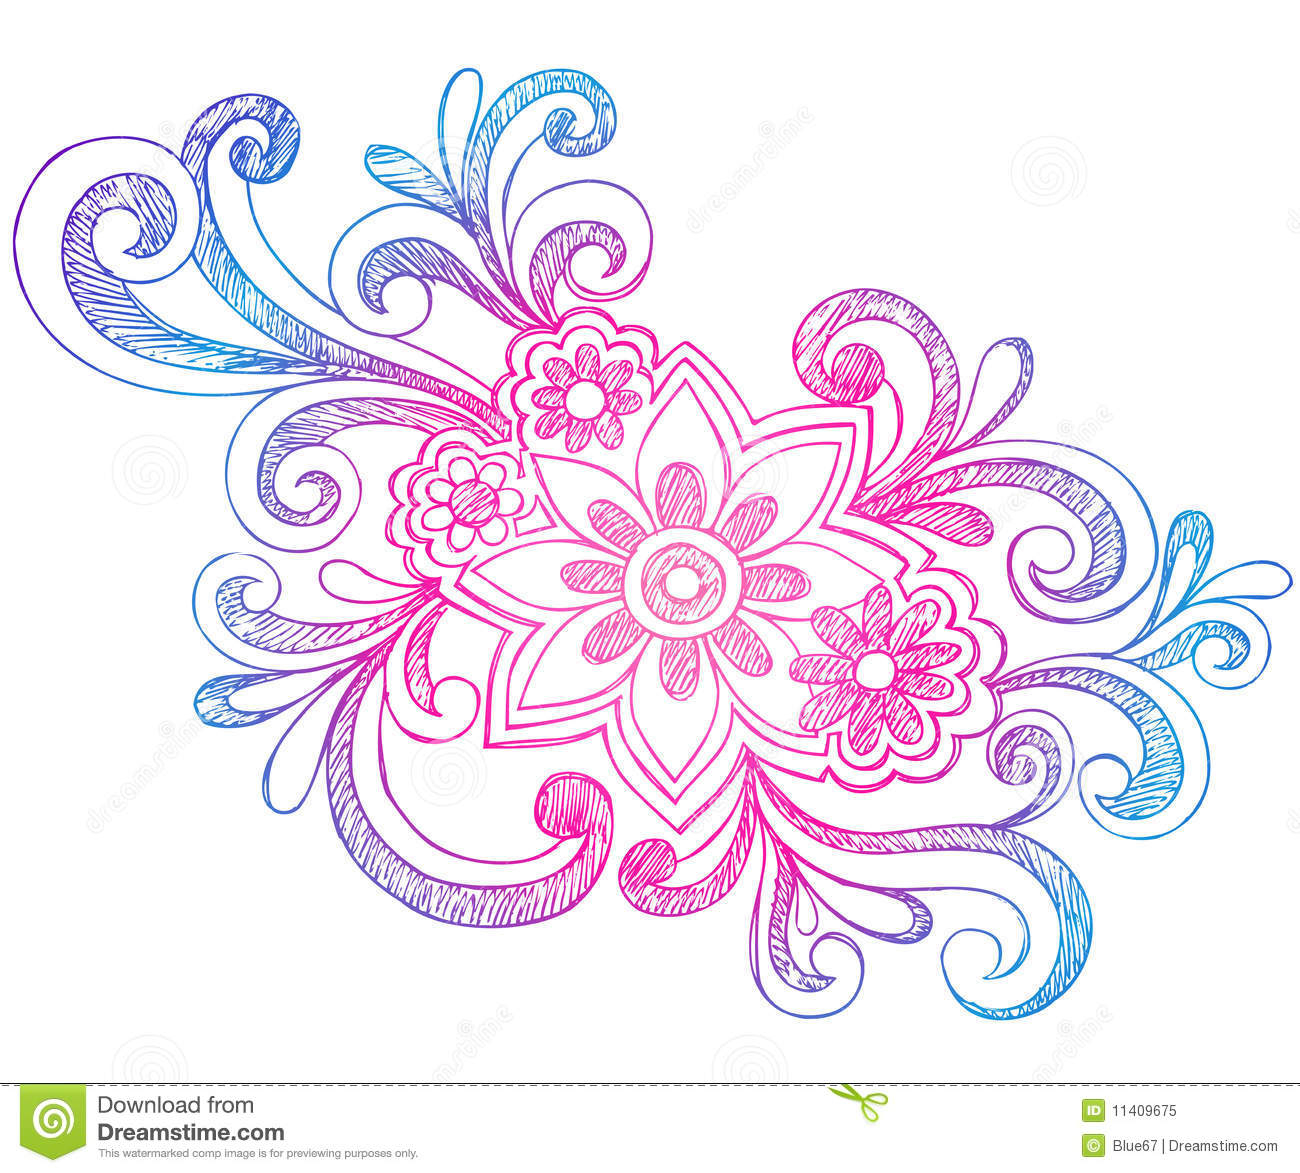 Flowers and swirls sketchy notebook doodles royalty free for Decoraciones para hojas